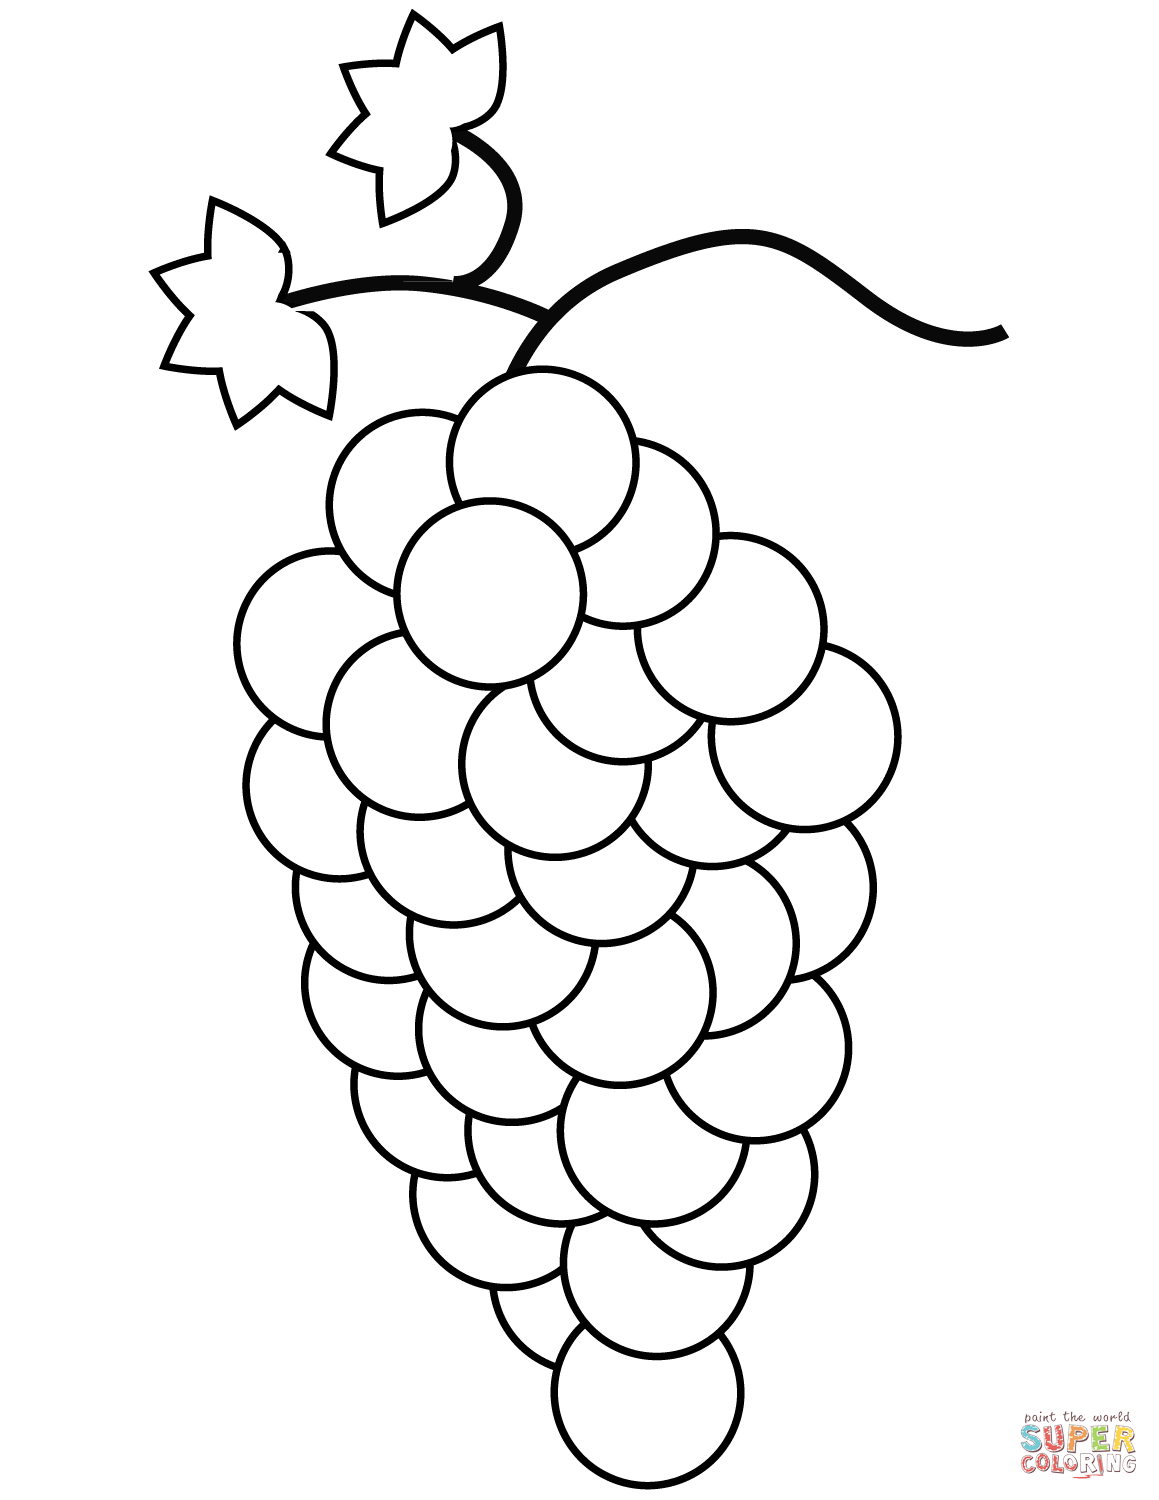 Pretty Photo of Grapes Coloring Page